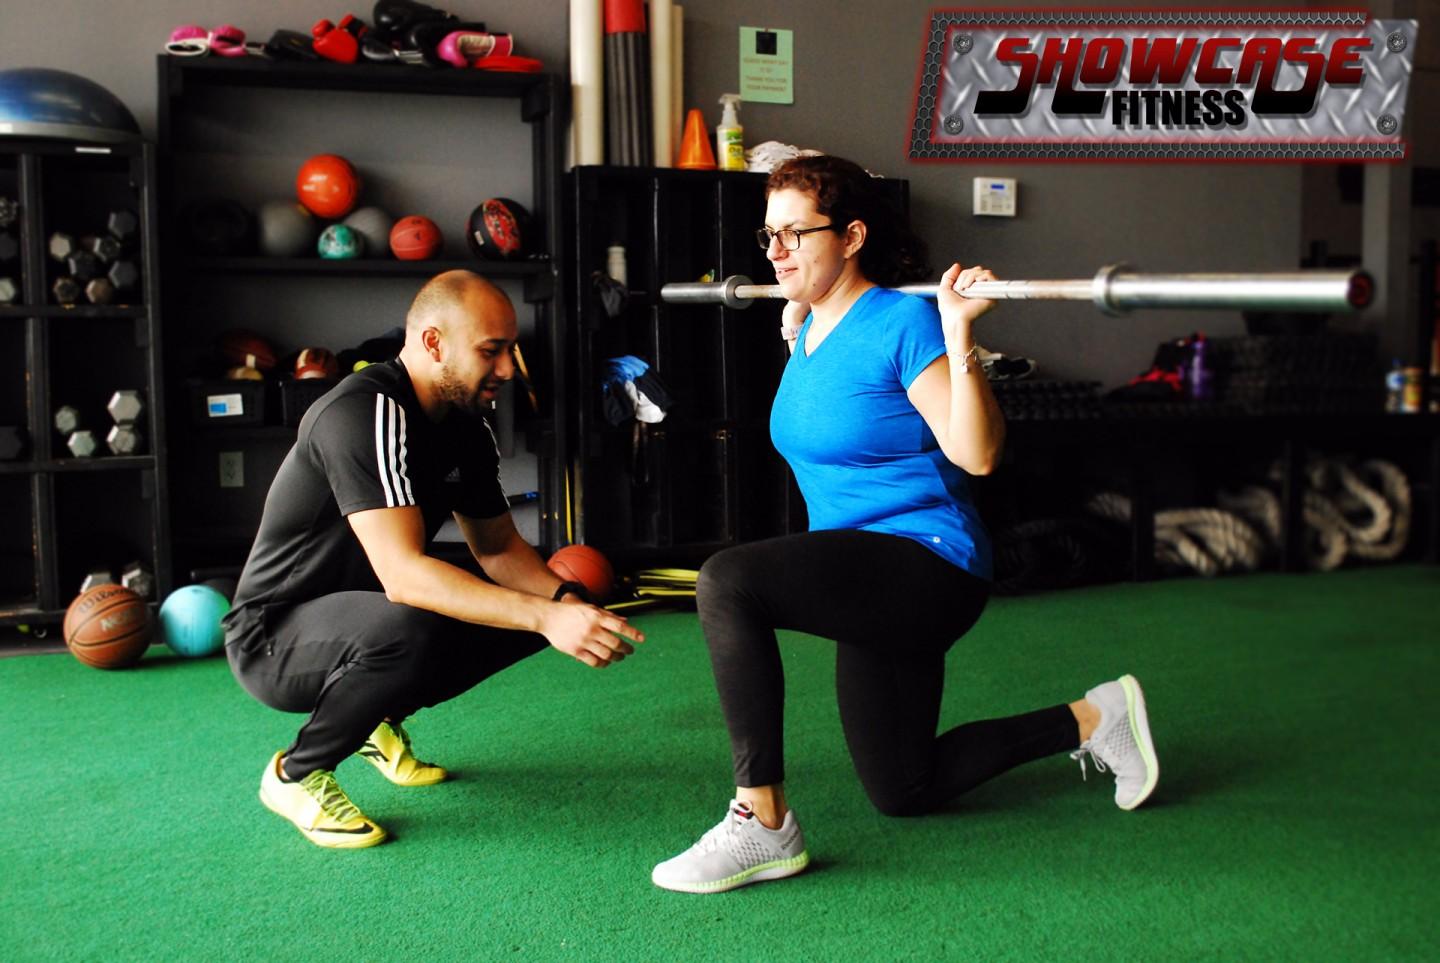 showcase fitness personal training san antonio texas